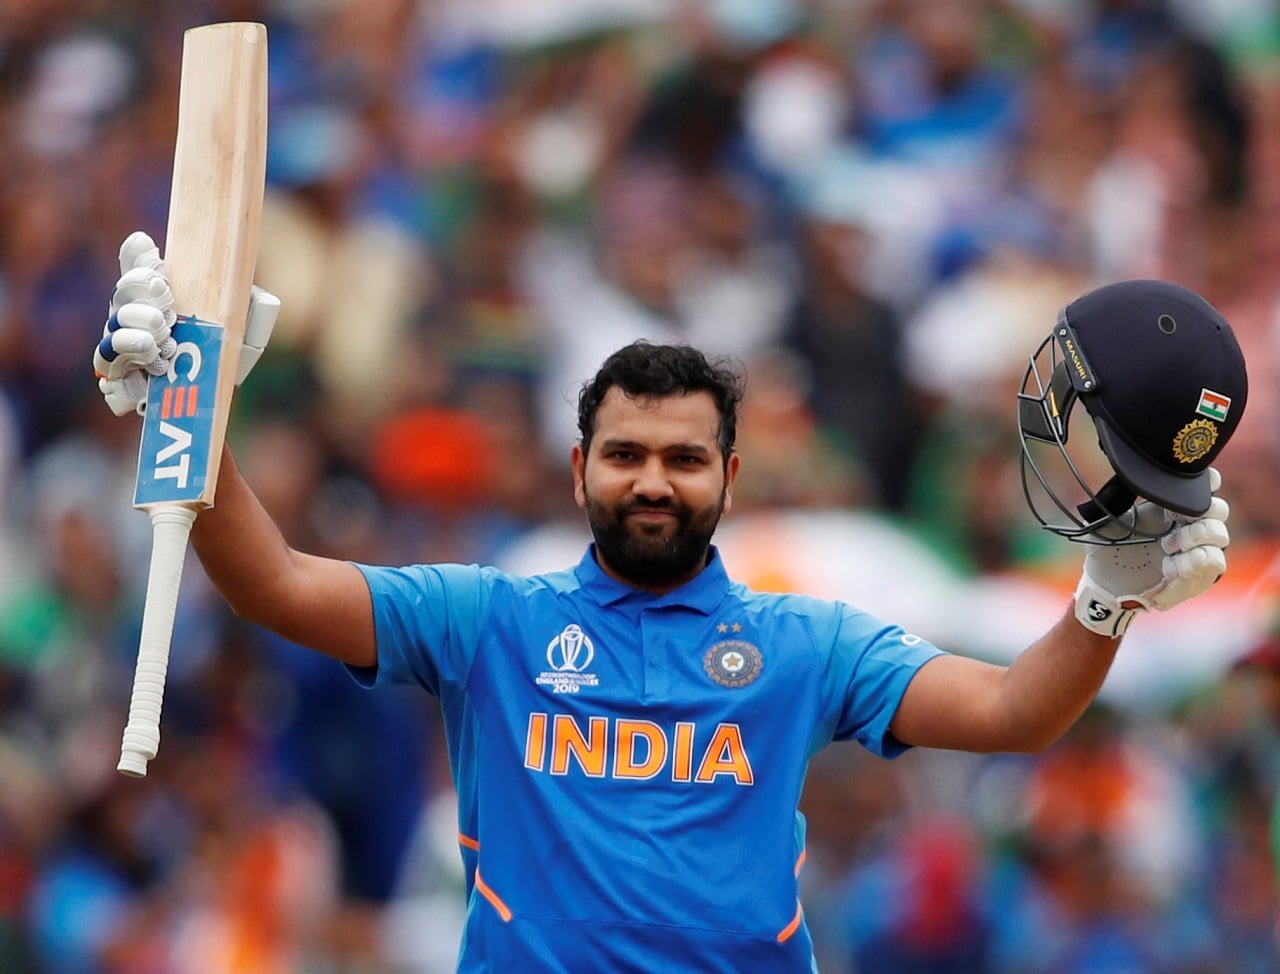 Cricket - ICC Cricket World Cup - Bangladesh v India - Edgbaston, Birmingham, Britain - July 2, 2019 India's Rohit Sharma celebrates his century Action Images via Reuters/Andrew Boyers